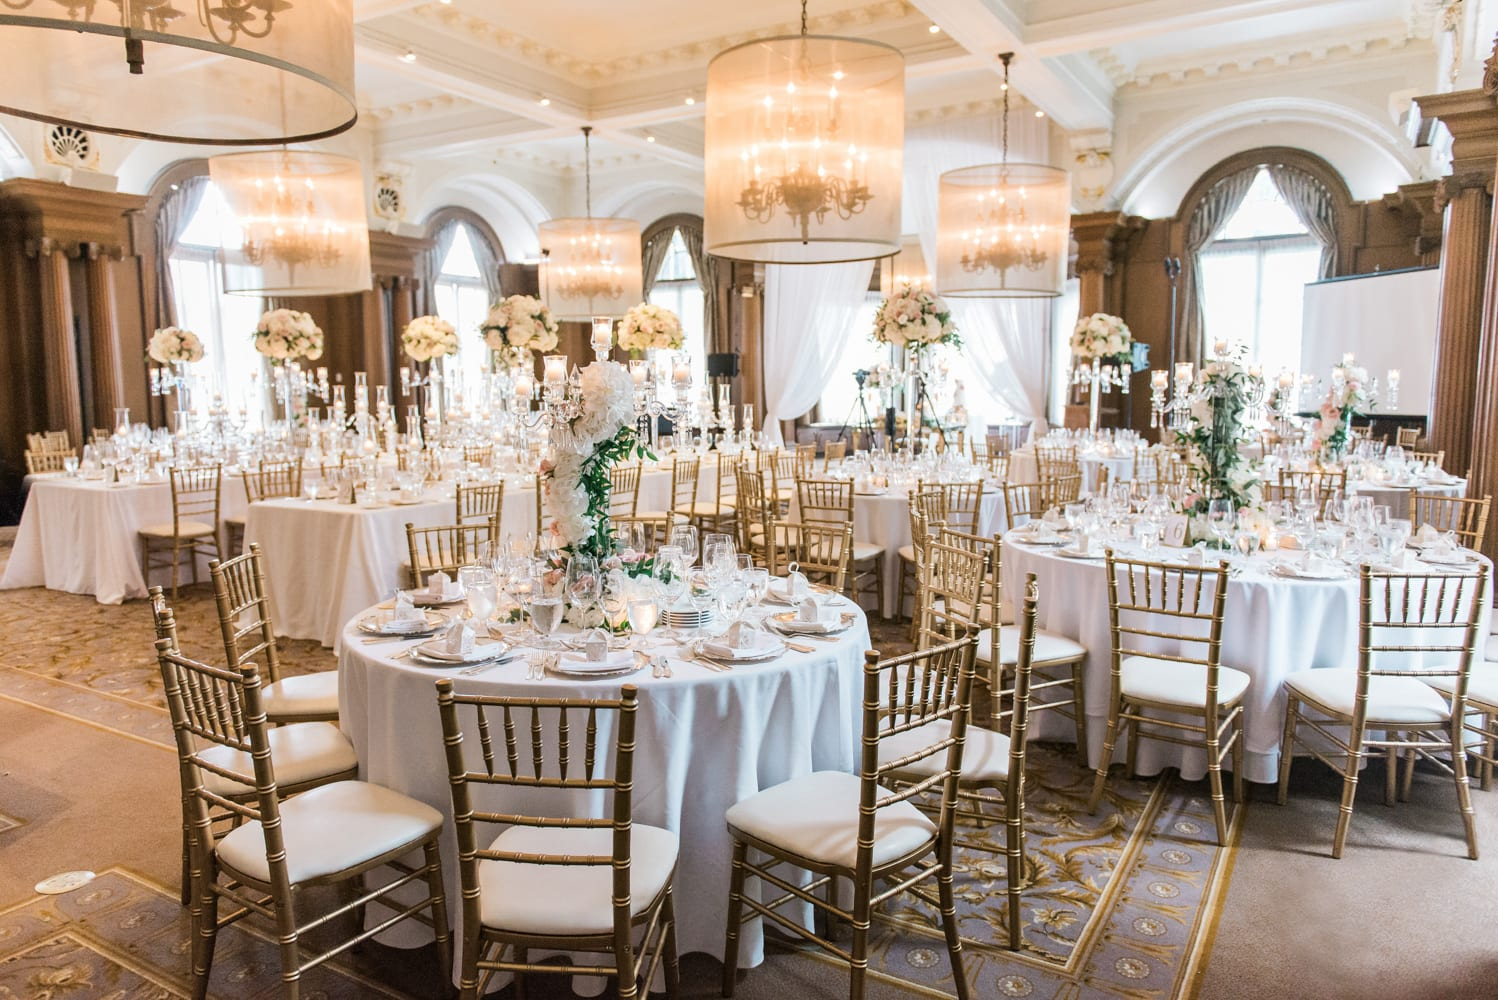 A Vintage Persian Wedding in Vancouver - Dining room